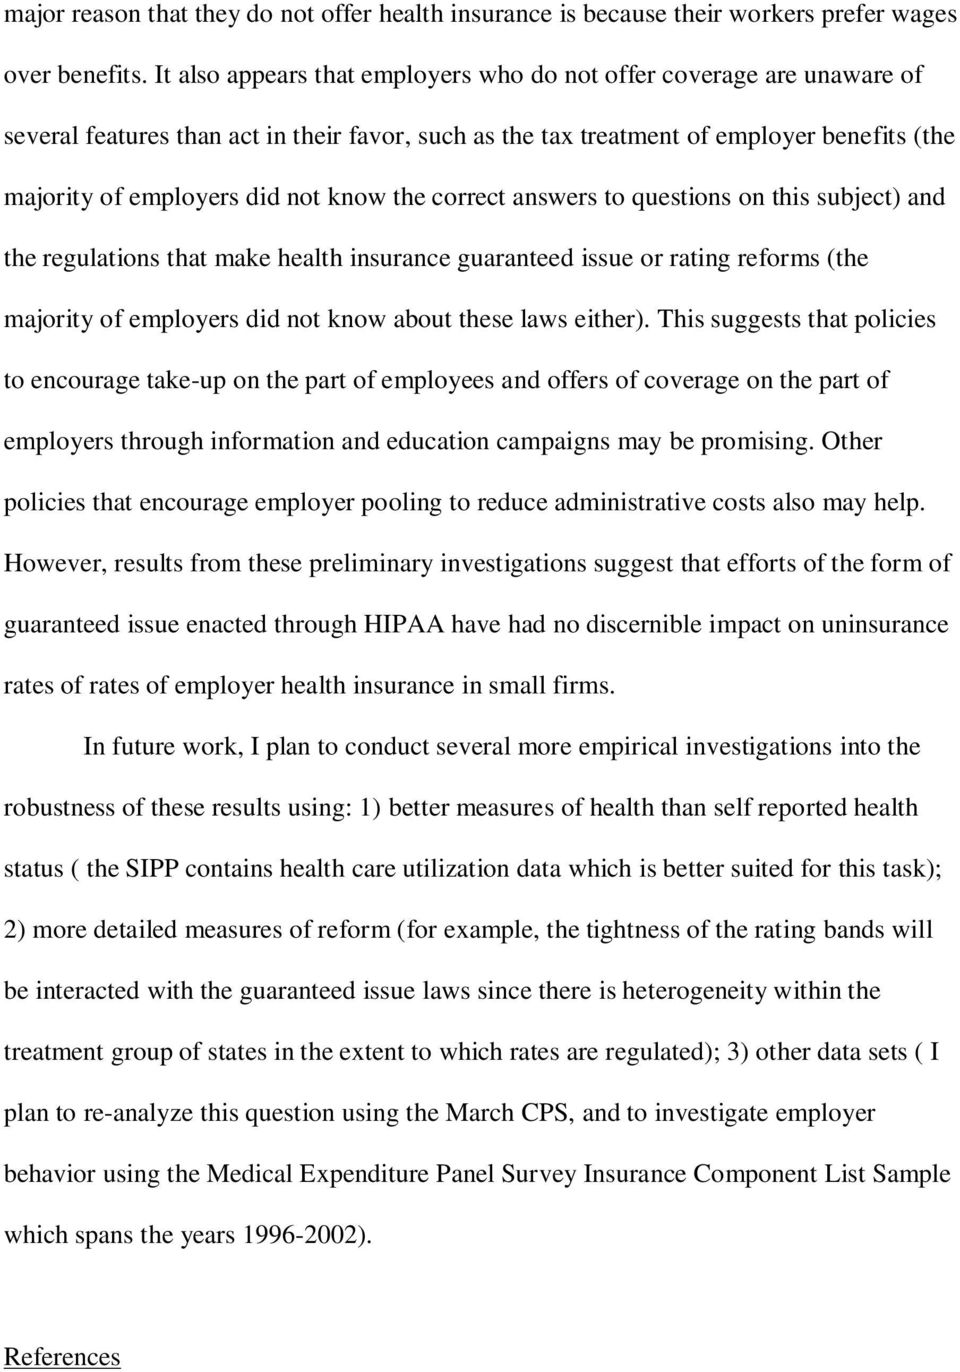 know the correct answers to questions on this subject) and the regulations that make health insurance guaranteed issue or rating reforms (the majority of employers did not know about these laws